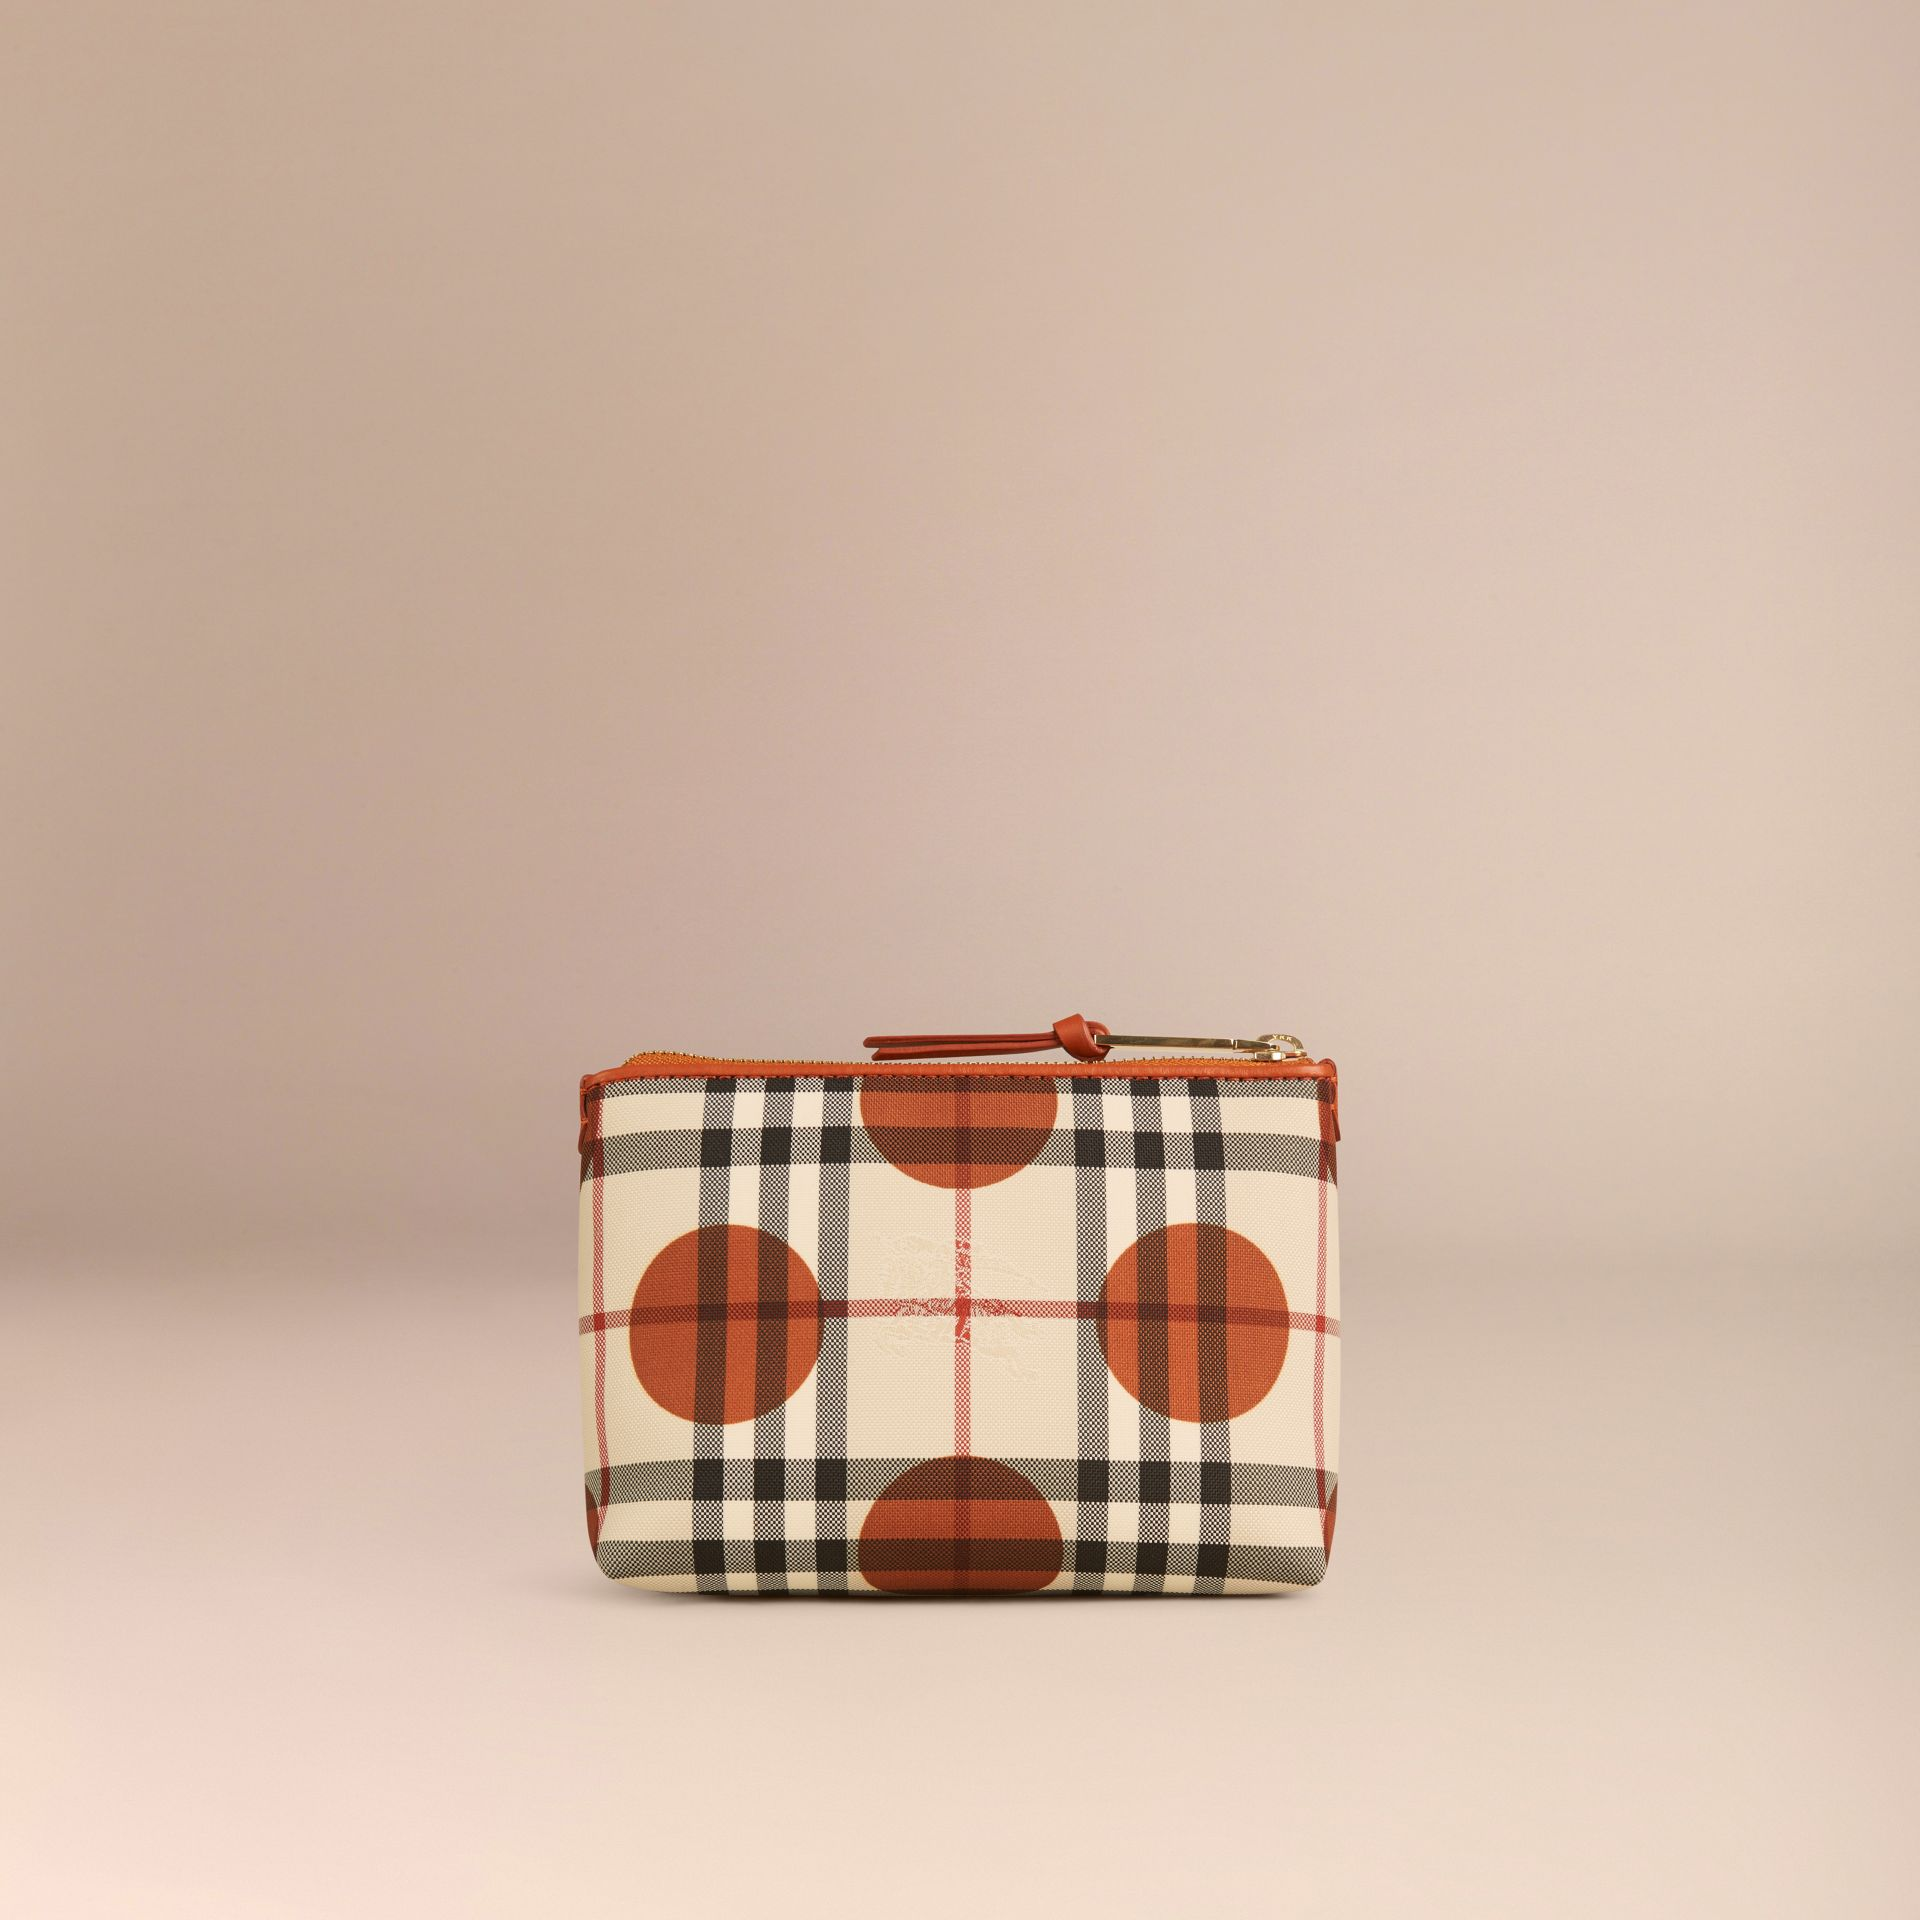 Orange brûlé Pochette medium à motif check et pois bordée de cuir Orange Brûlé - photo de la galerie 4